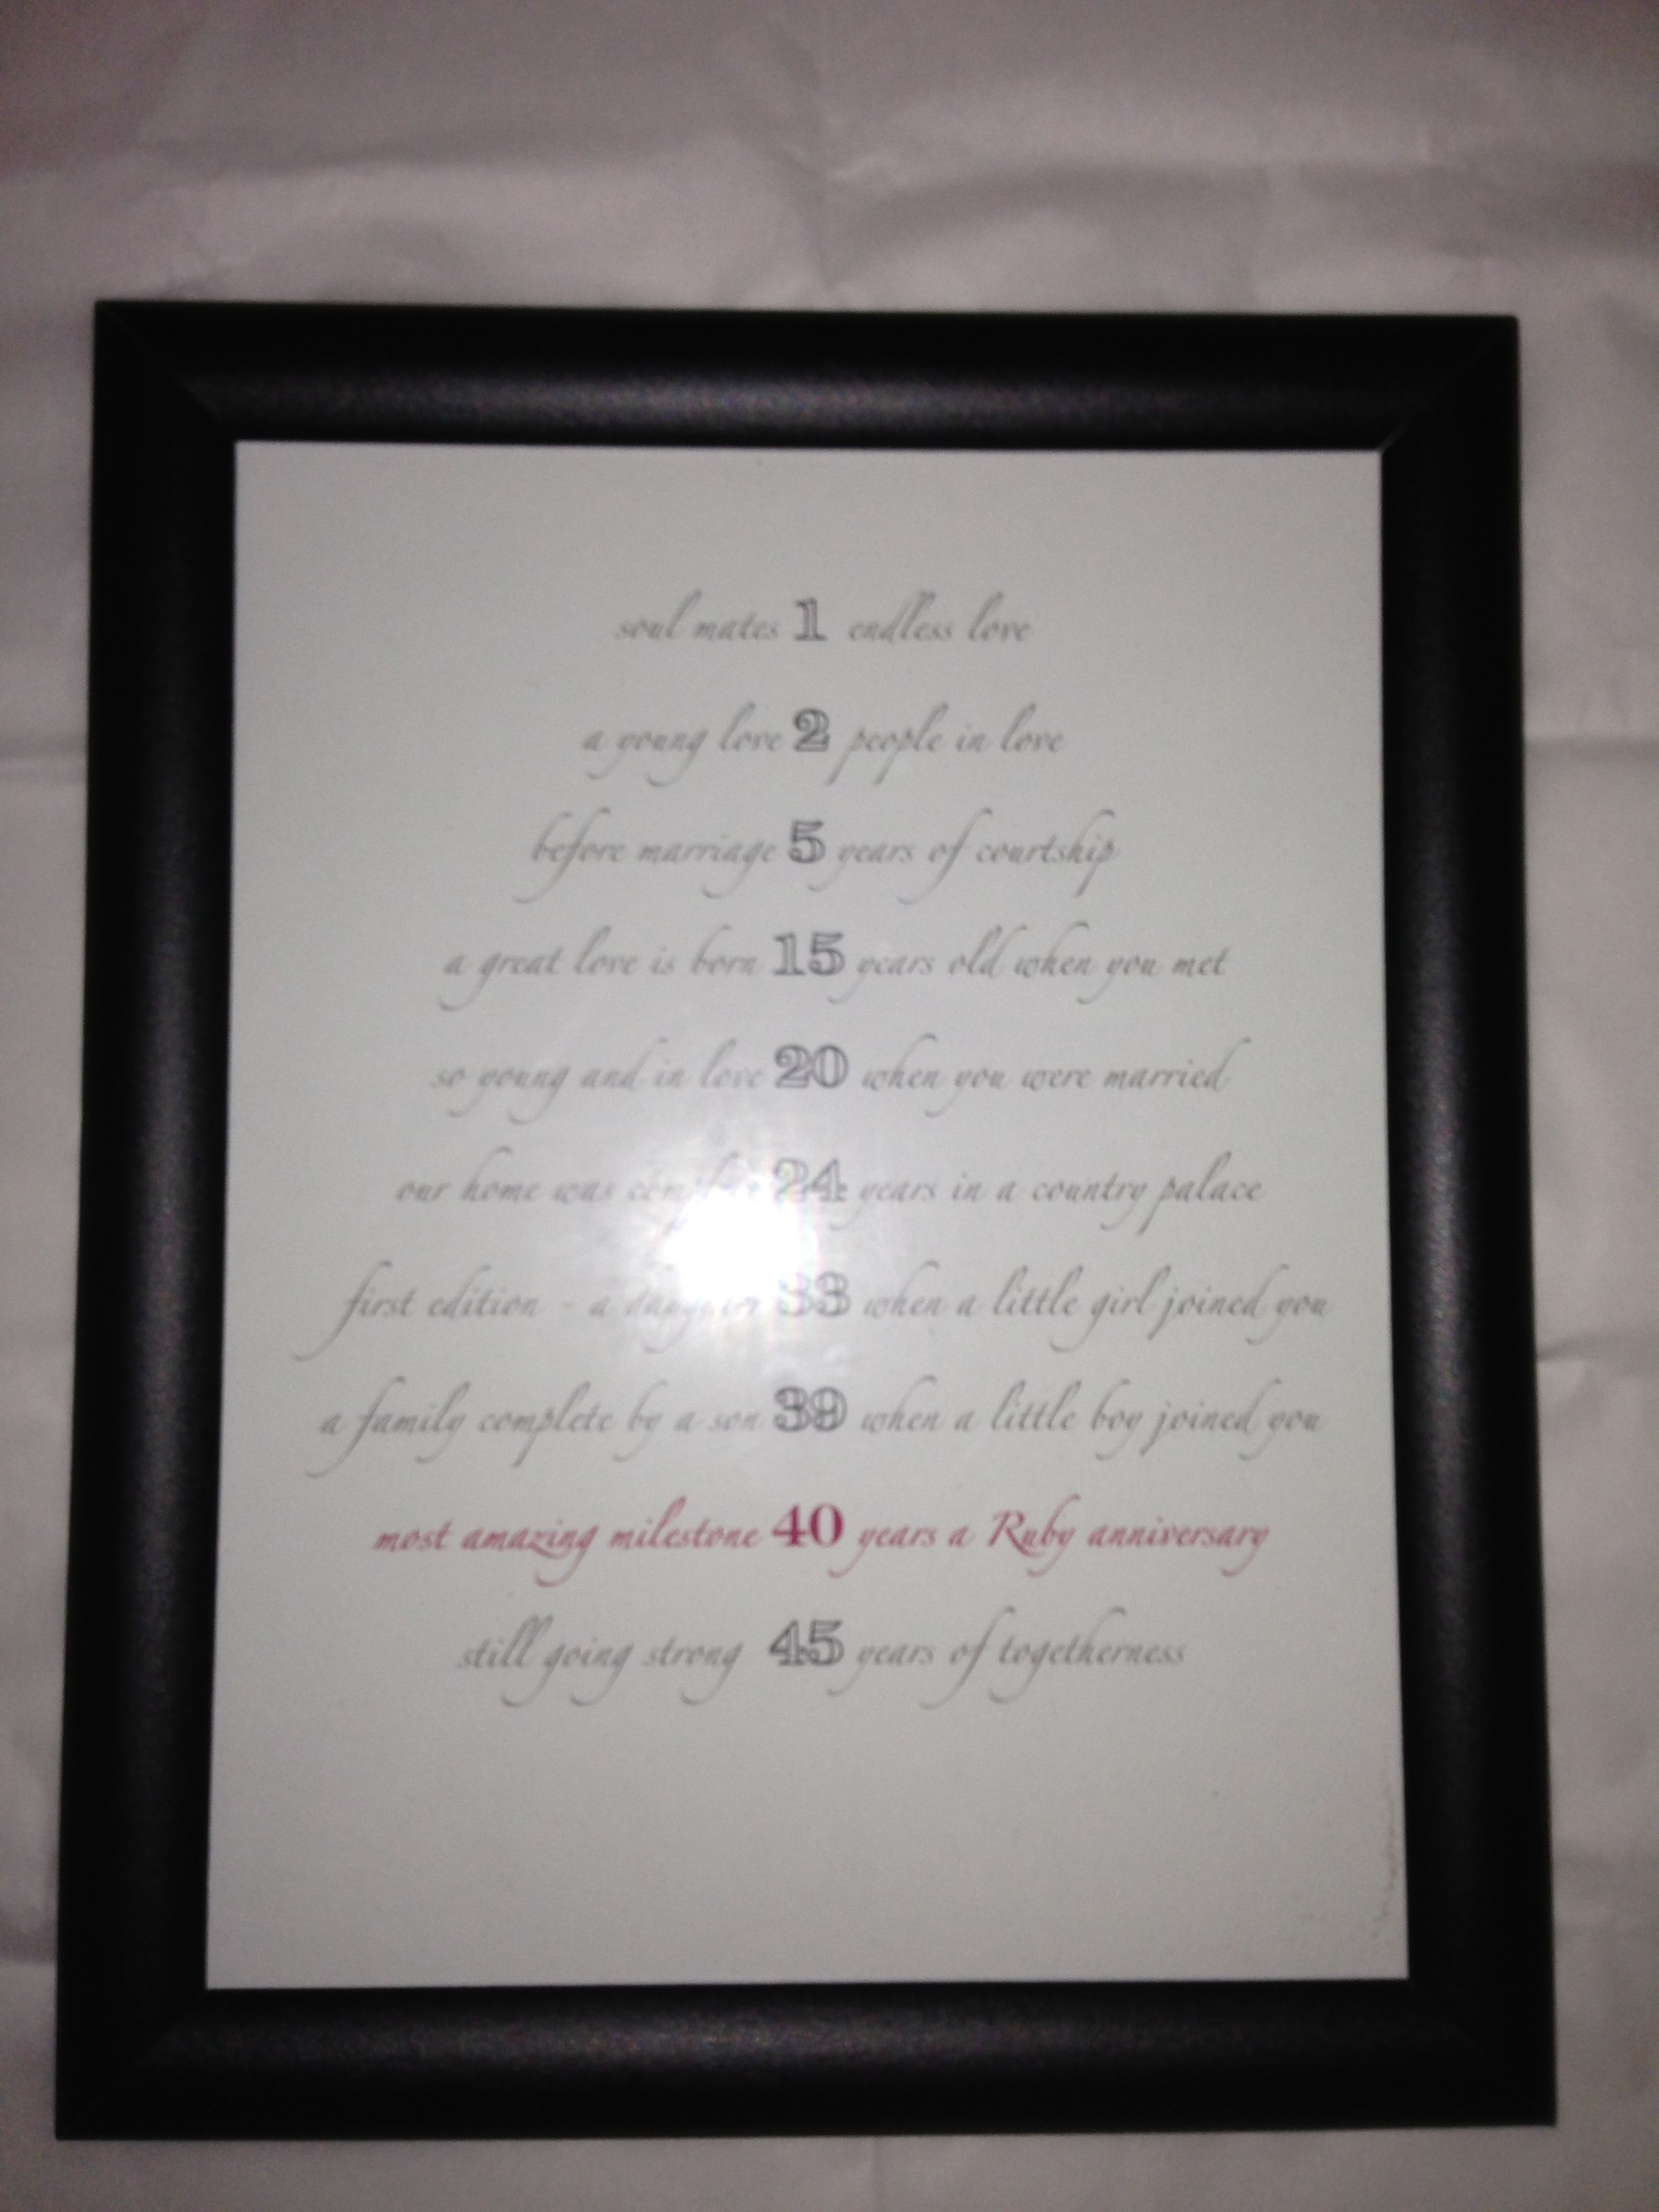 40th Wedding Anniversary Gift Ideas For Parents Australia : 40Th, Gift Ideas, Dads Anniversary, Anniversary Ideas, 40Th Wedding ...